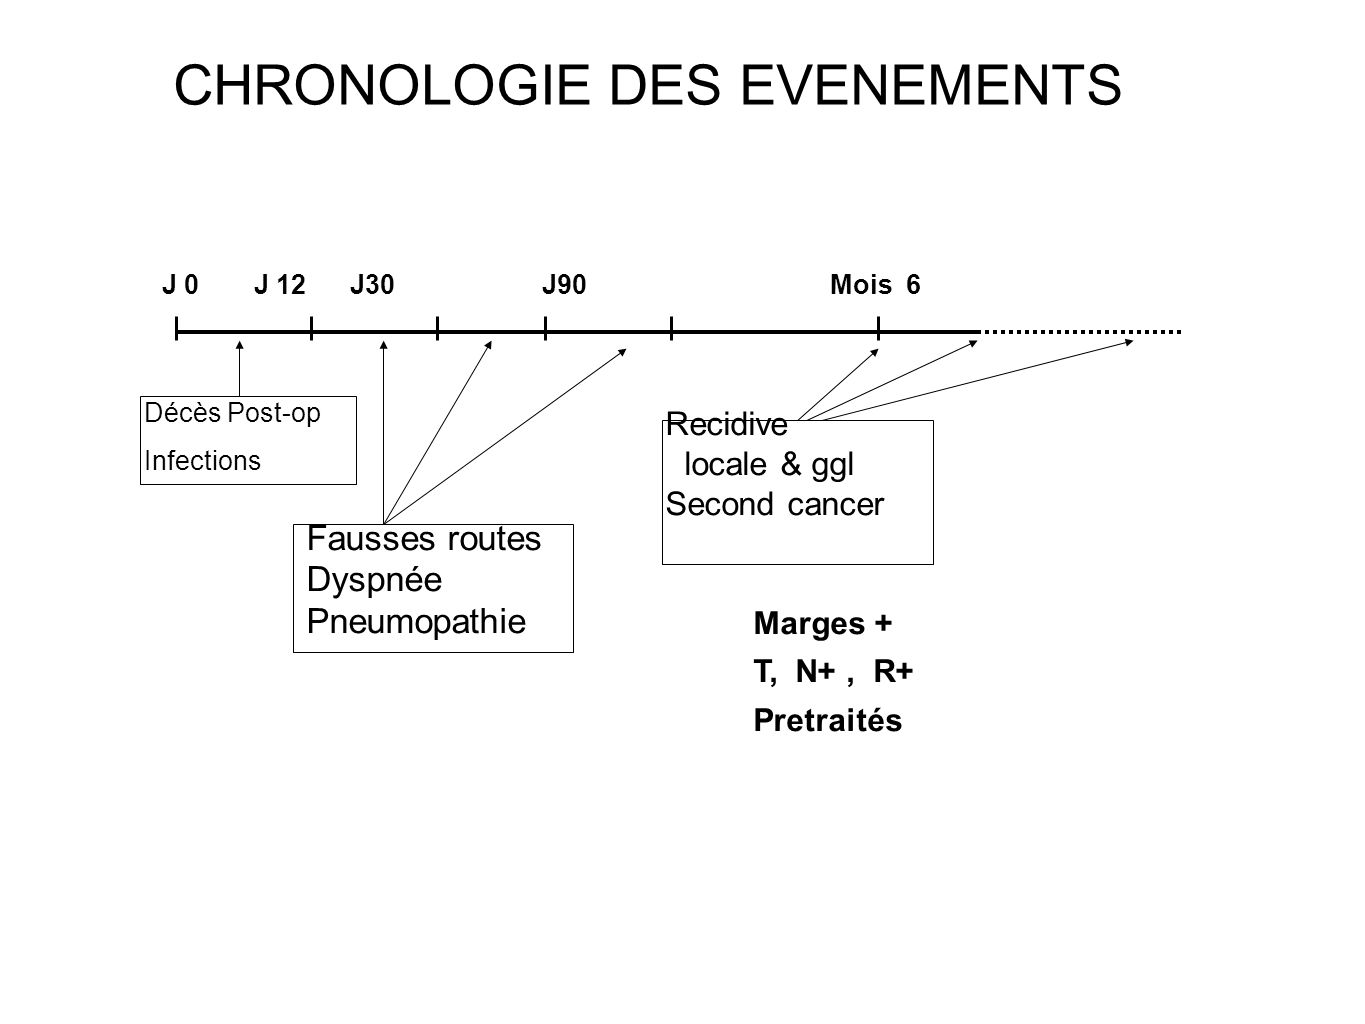 J 0J 12J30J90Mois 6 Décès Post-op Infections Fausses routes Dyspnée Pneumopathie Recidive locale & ggl Second cancer Marges + T, N+, R+ Pretraités CHRONOLOGIE DES EVENEMENTS